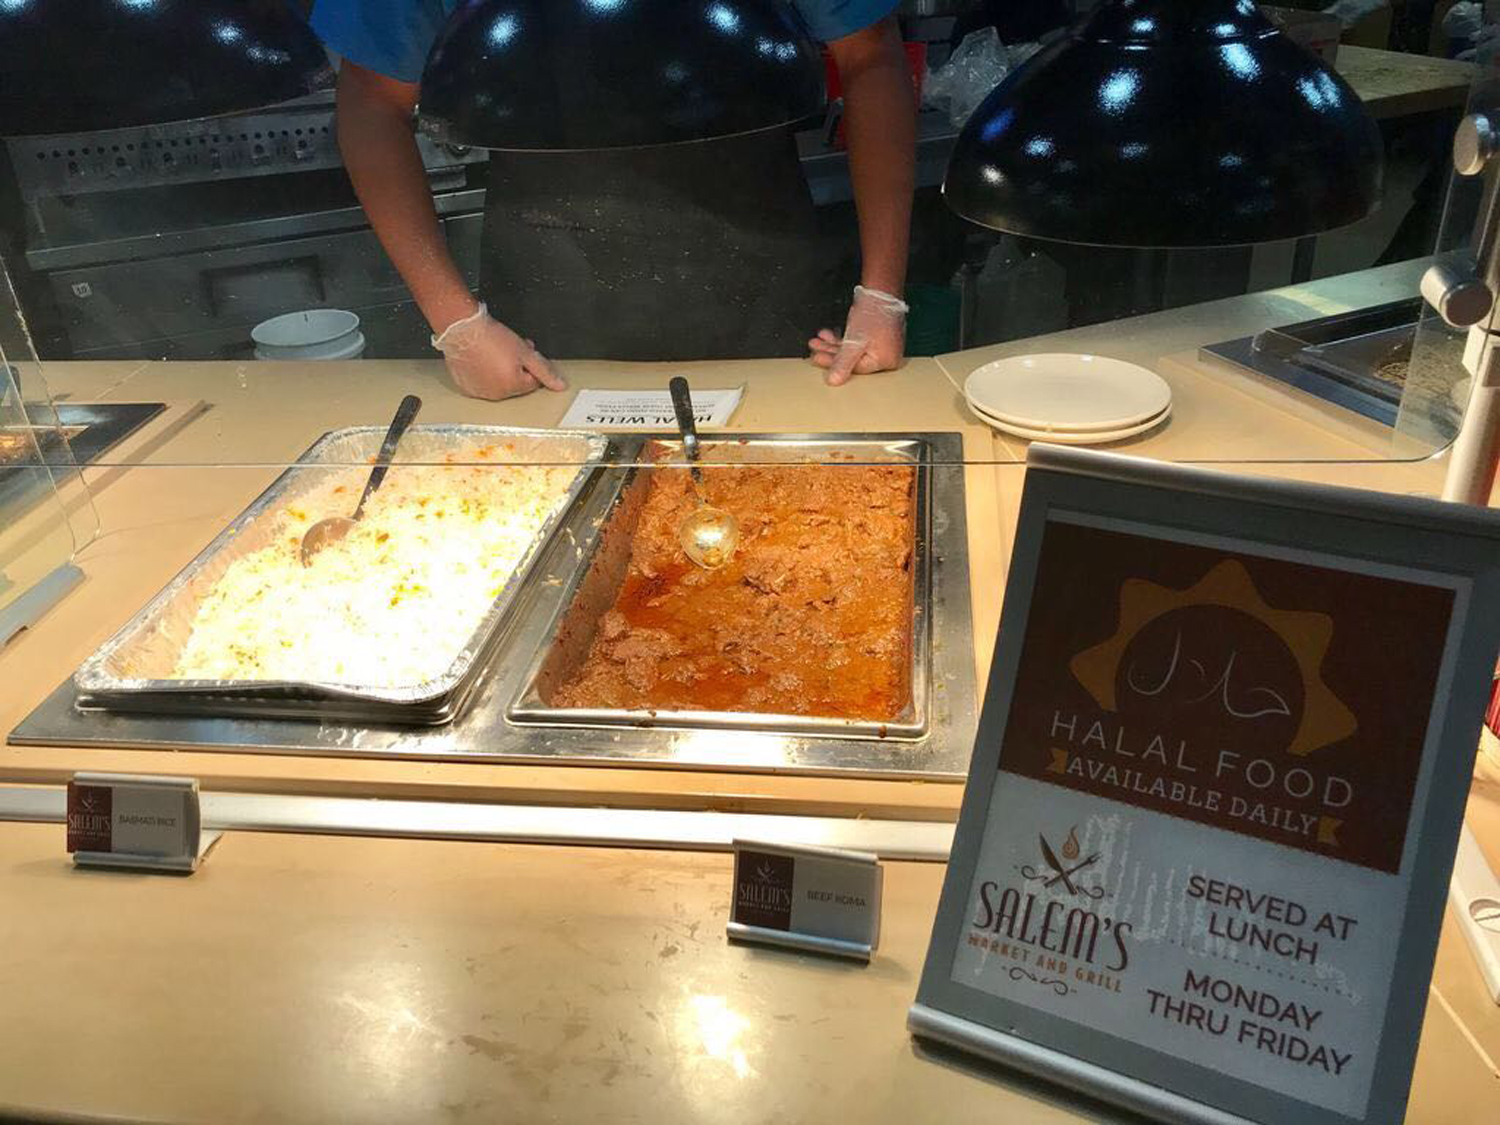 Market Central now serves expanded halal food options between 11 a.m. and 2 p.m. at the Magellan's food station.